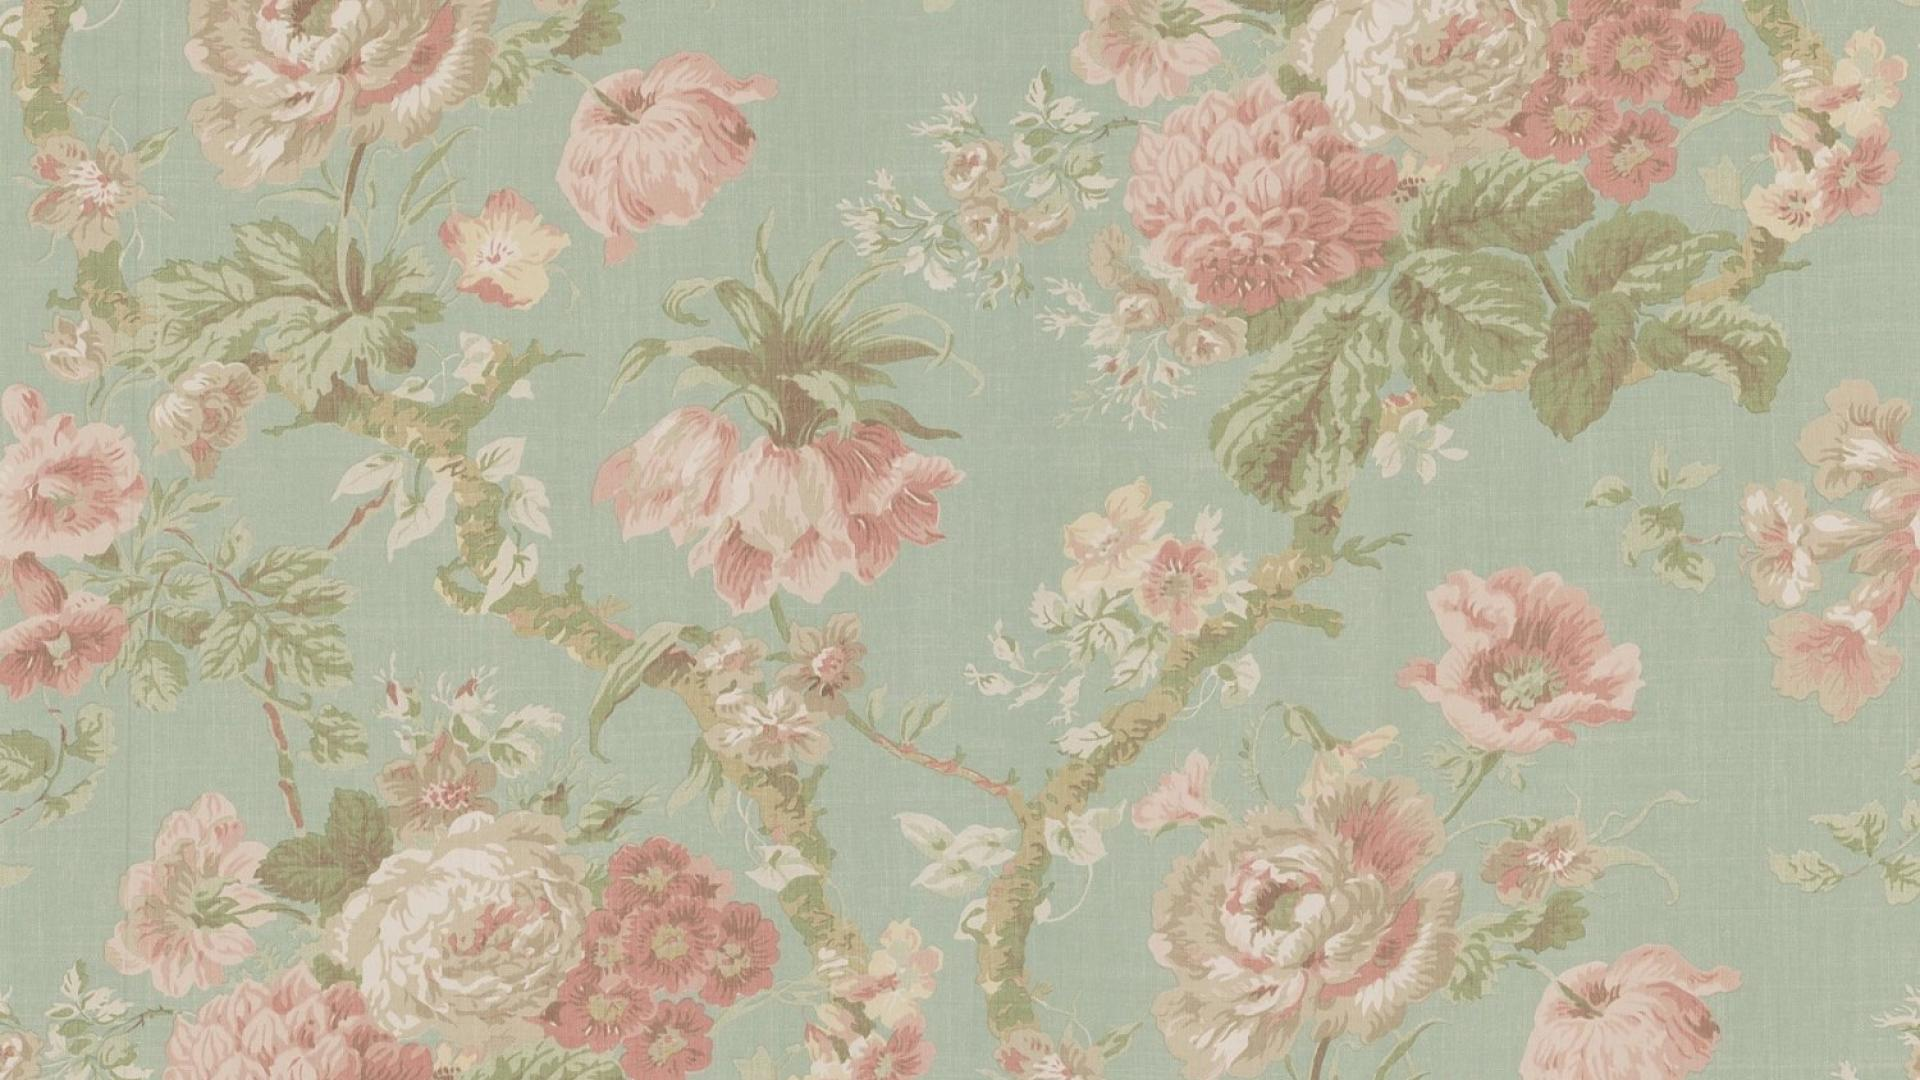 Vintage floral pattern desktop wallpaper